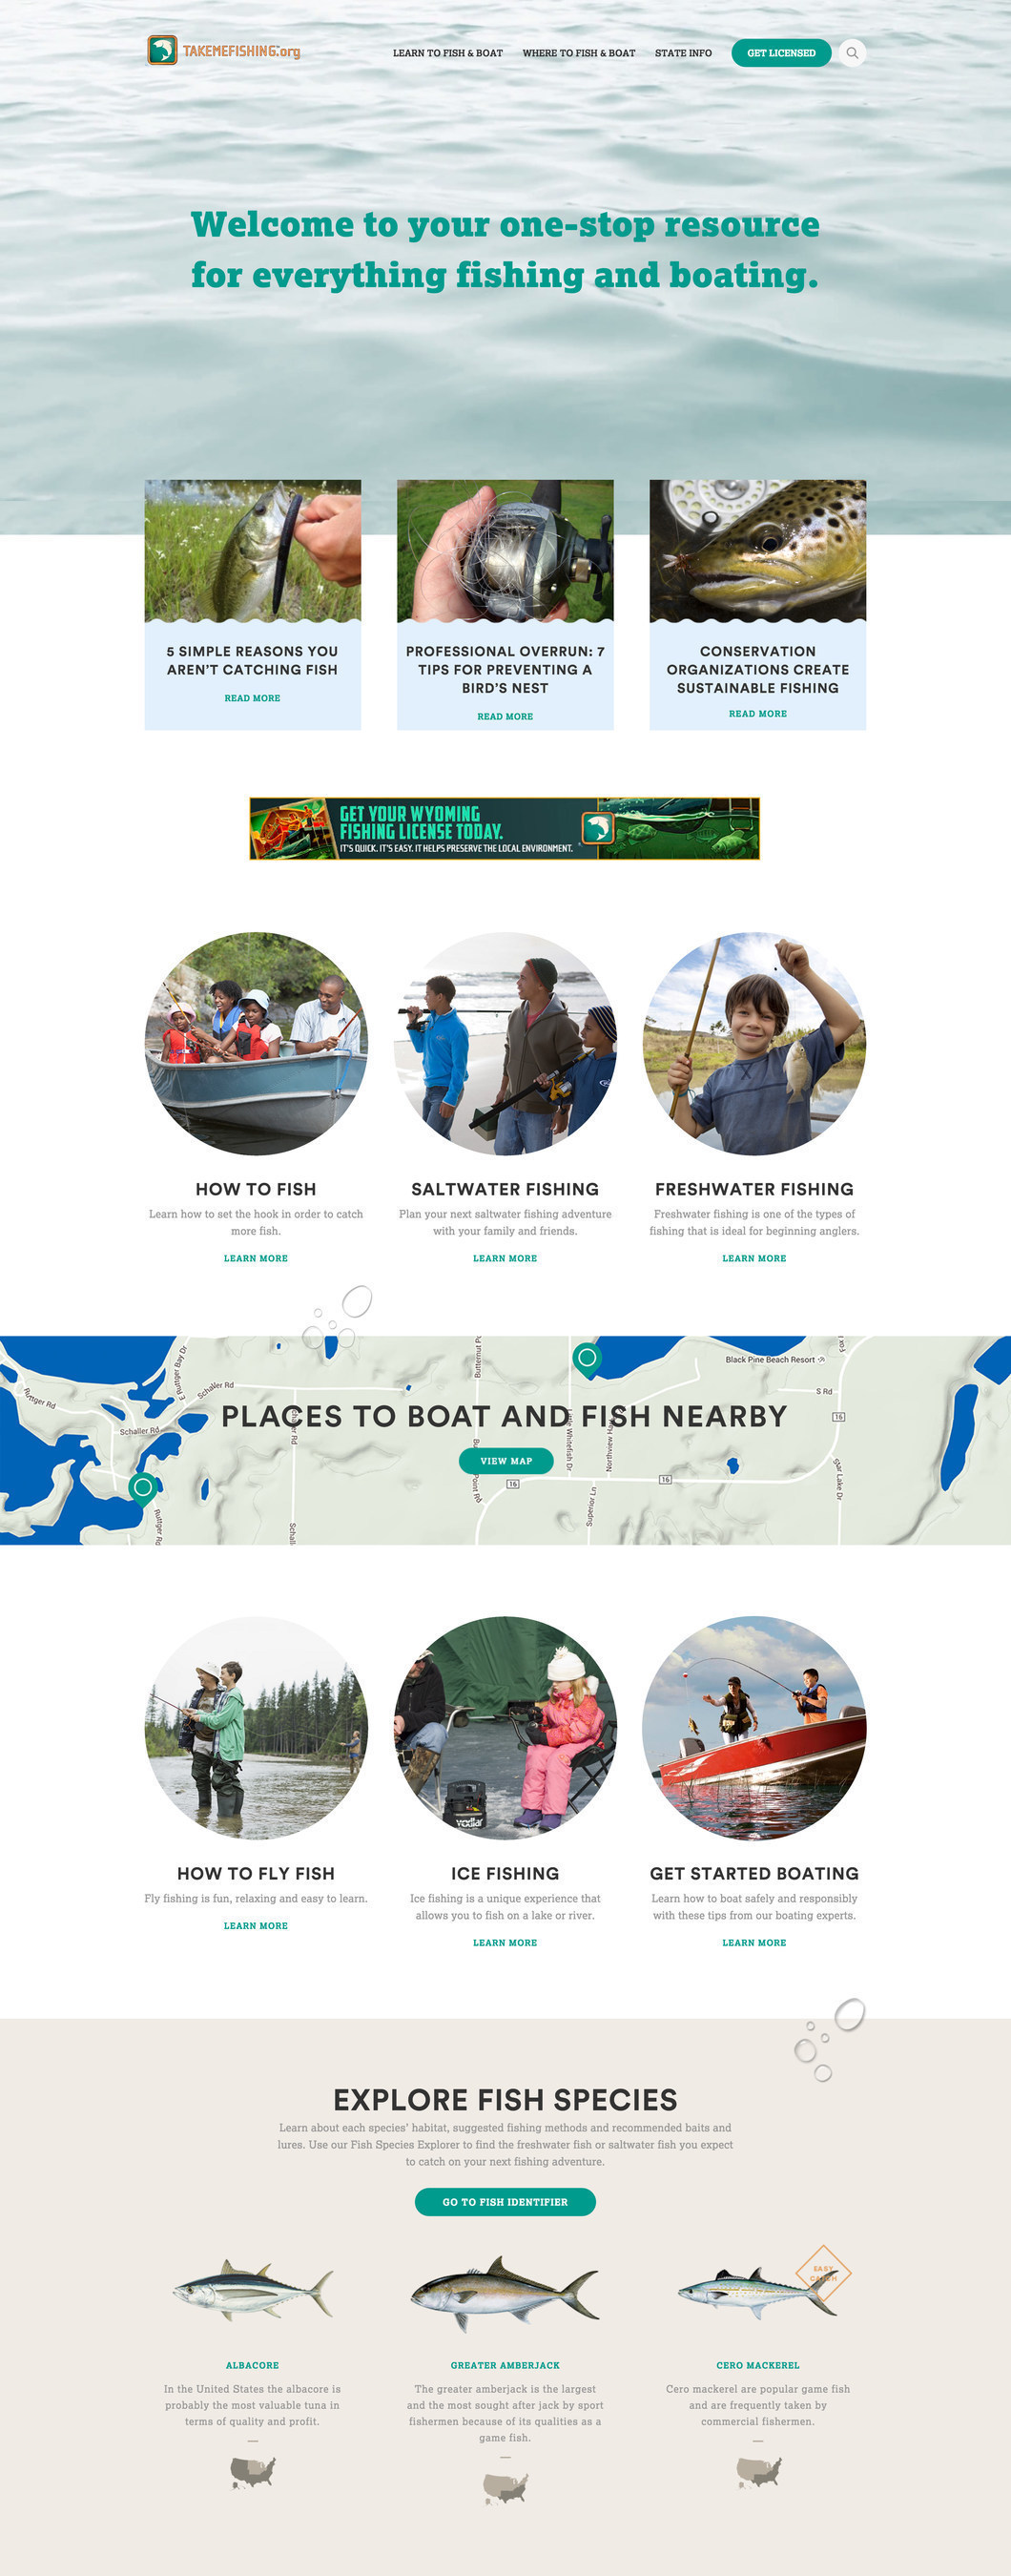 Welcome to your one-stop resource for everything fishing and boating.